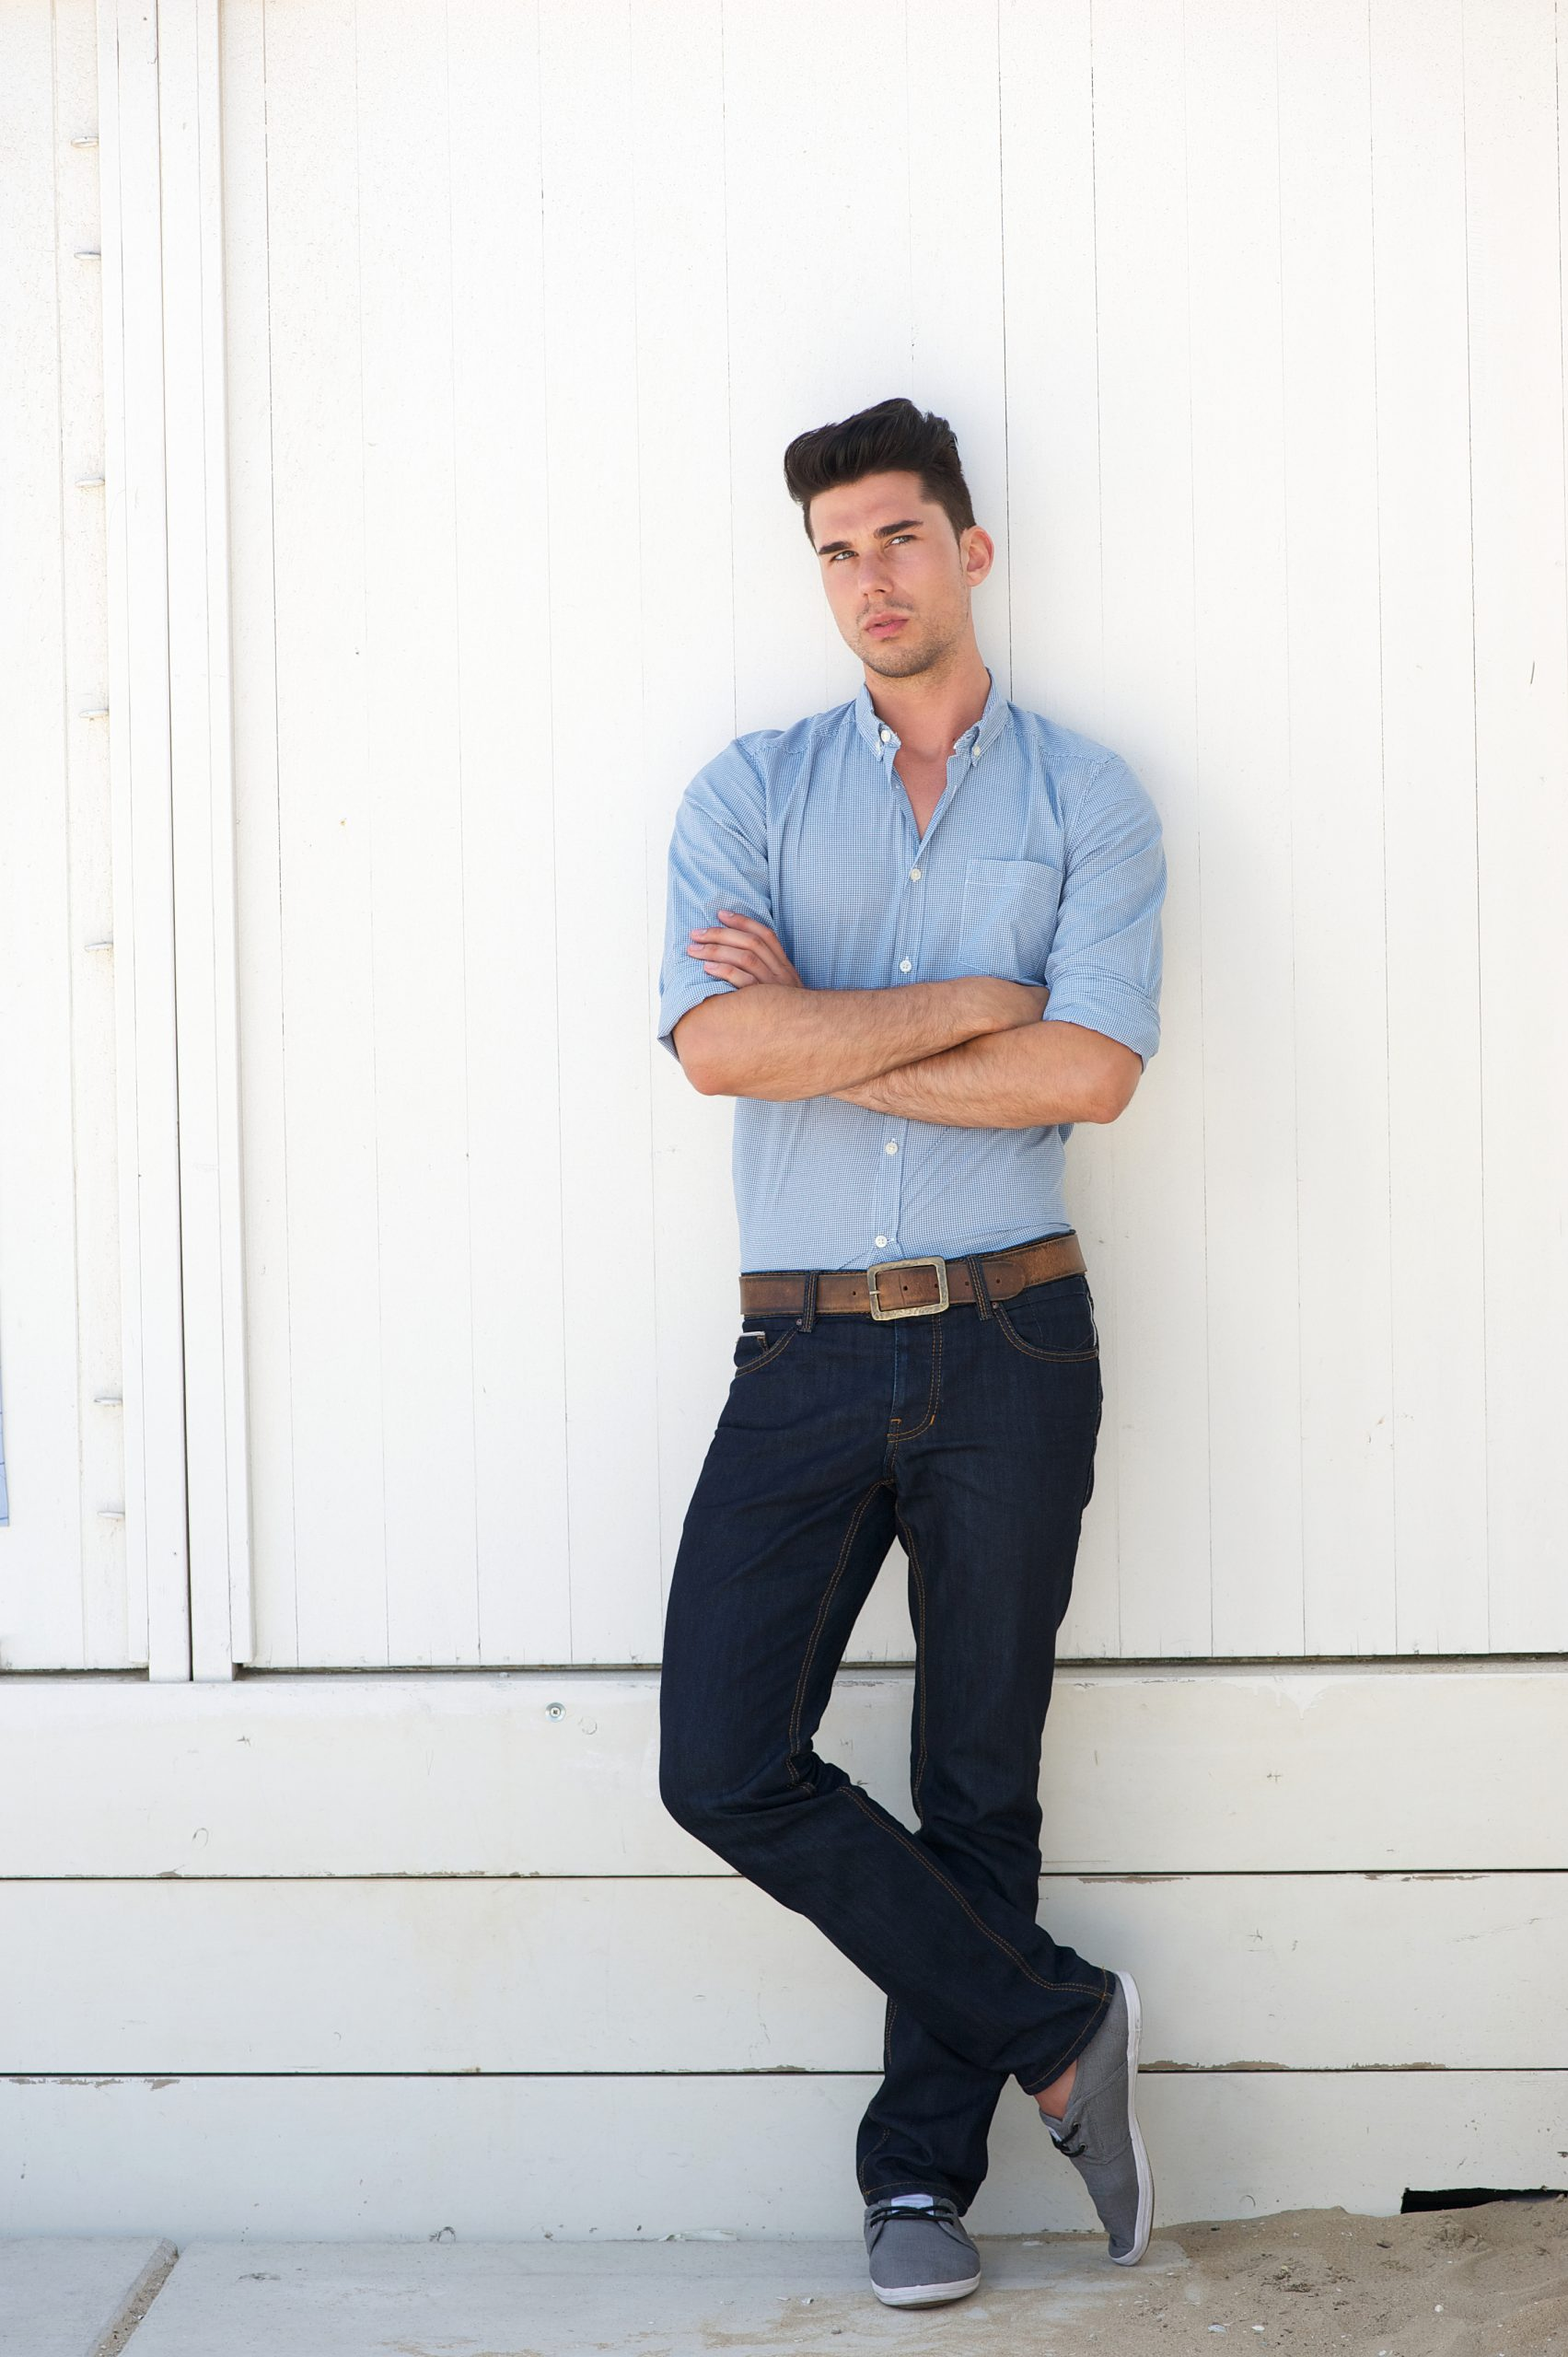 young-male-fashion-model-in-blue-jeans-and-shirt-PPKYYDU-scaled.jpg